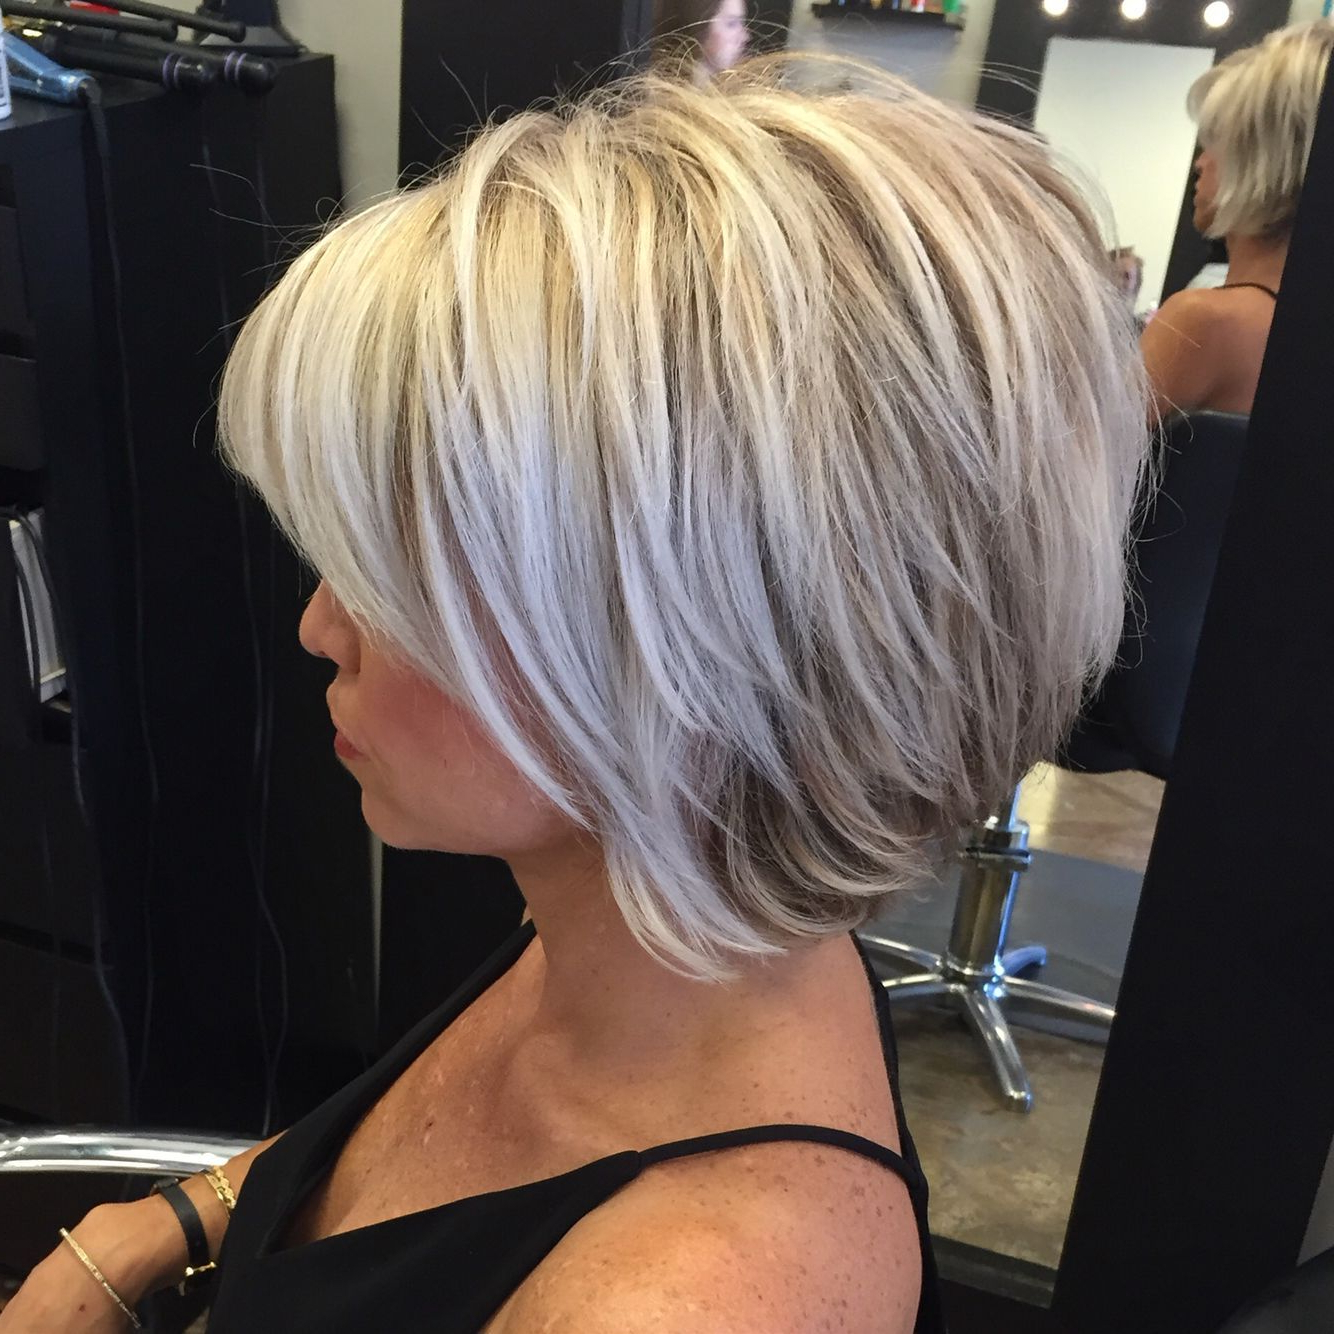 Pin On { Hair, Makeup, Nails } In Widely Used Short Platinum Blonde Bob Hairstyles (Gallery 1 of 20)